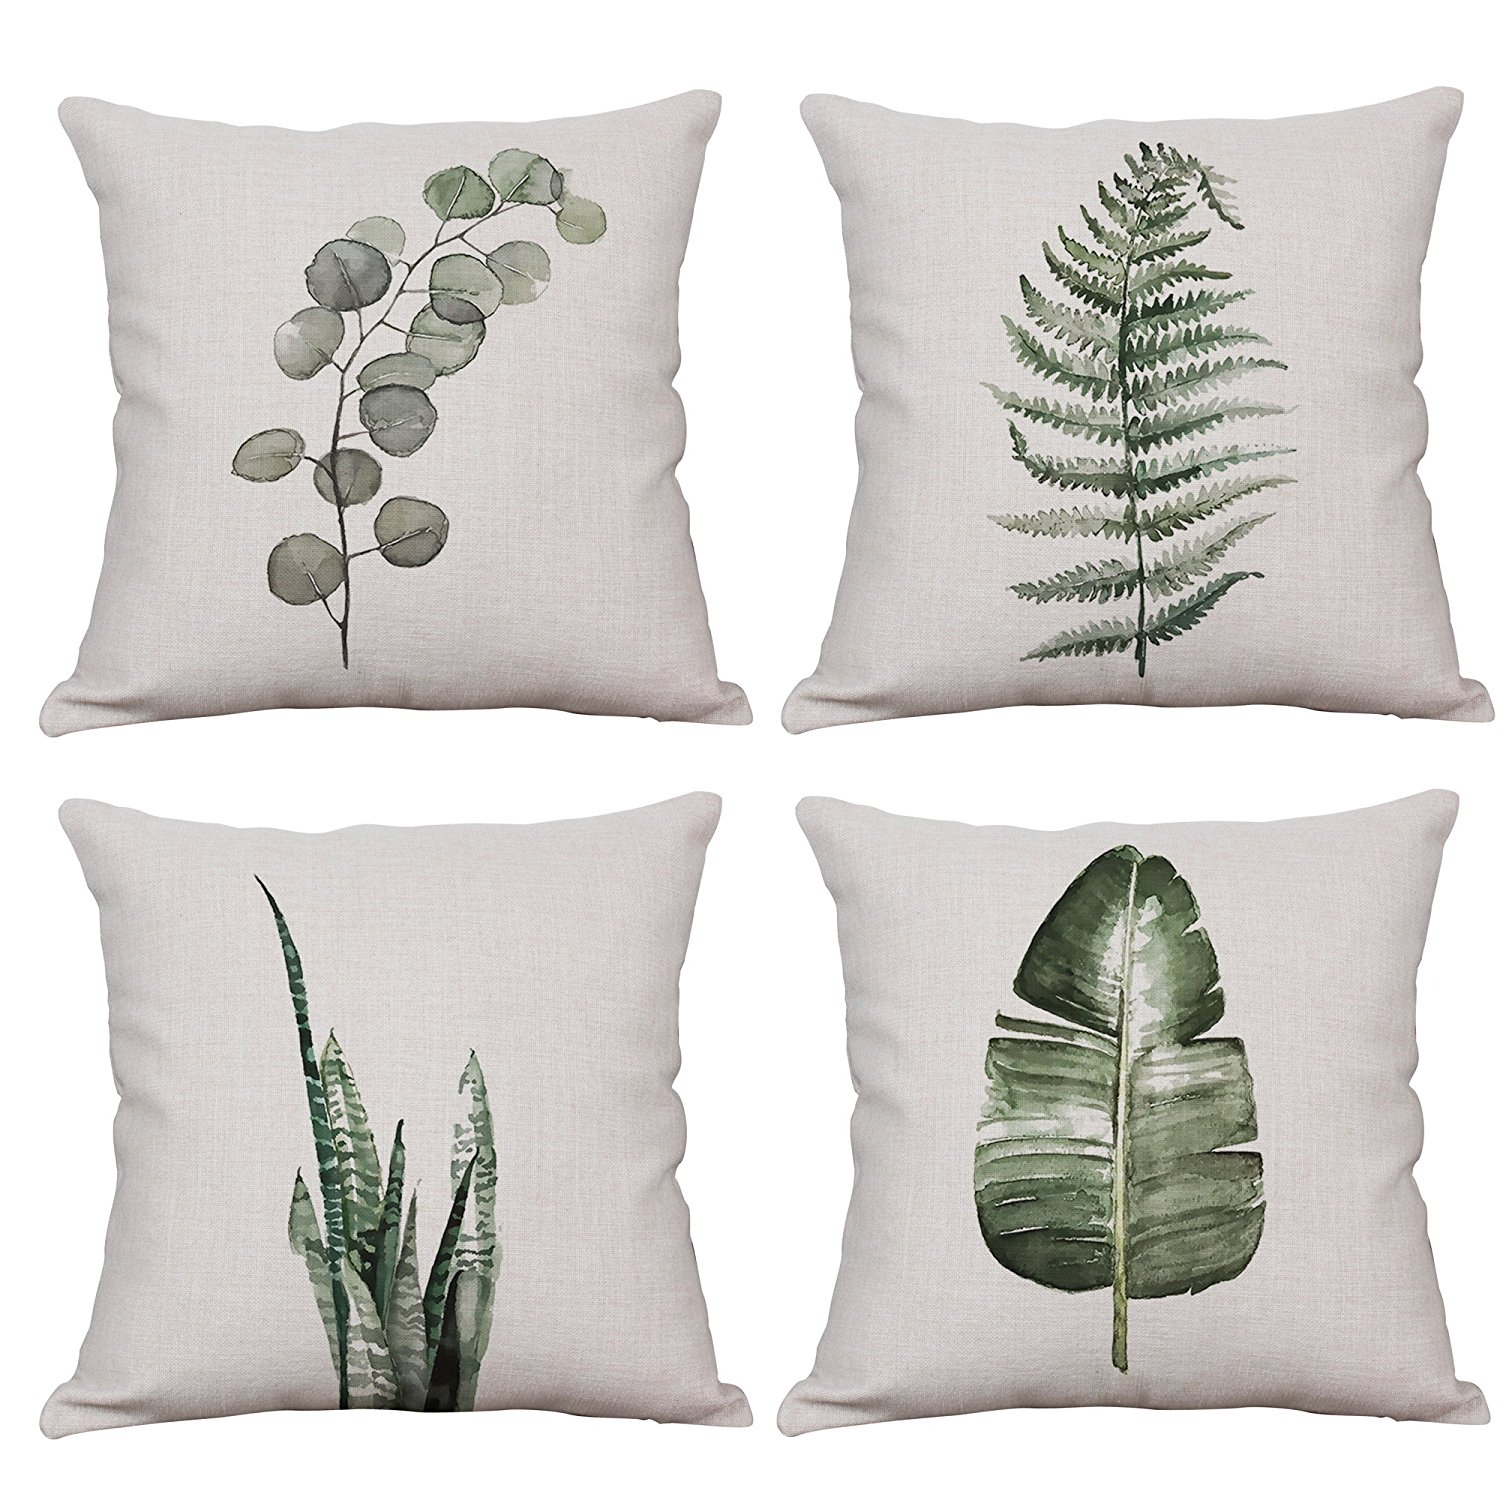 Cheap Throw Pillow Covers 20x20 Find Throw Pillow Covers 20x20